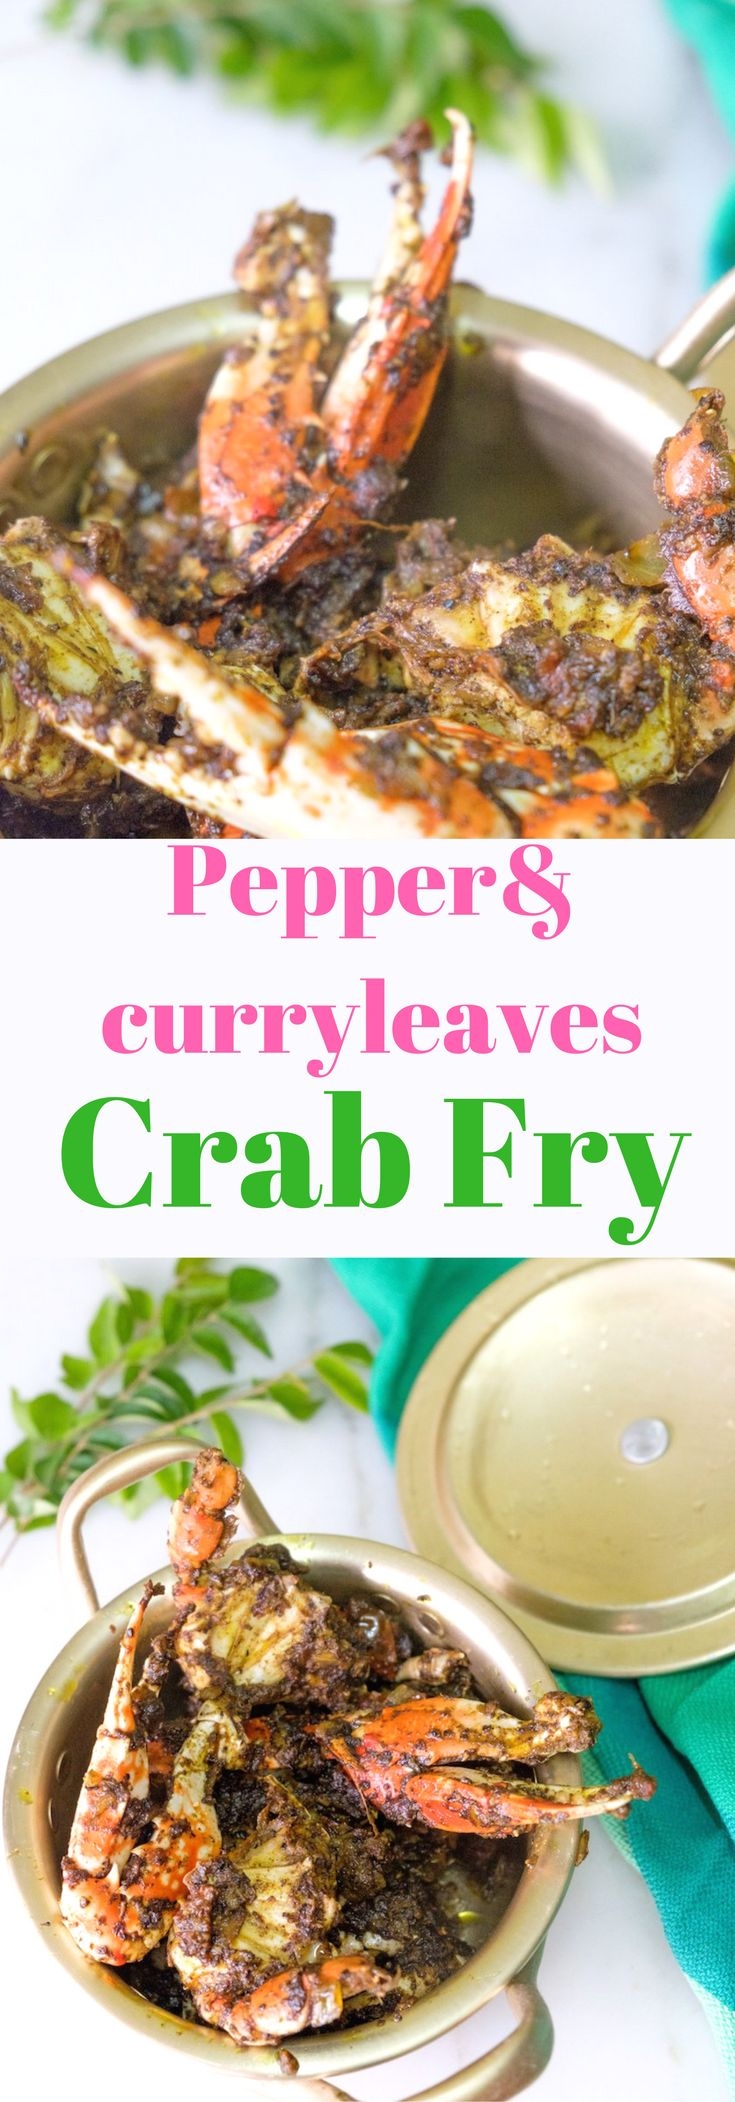 Roasted crab with grounded pepper and curry leaves gives you an earthy flavor which is spicy and peppery.